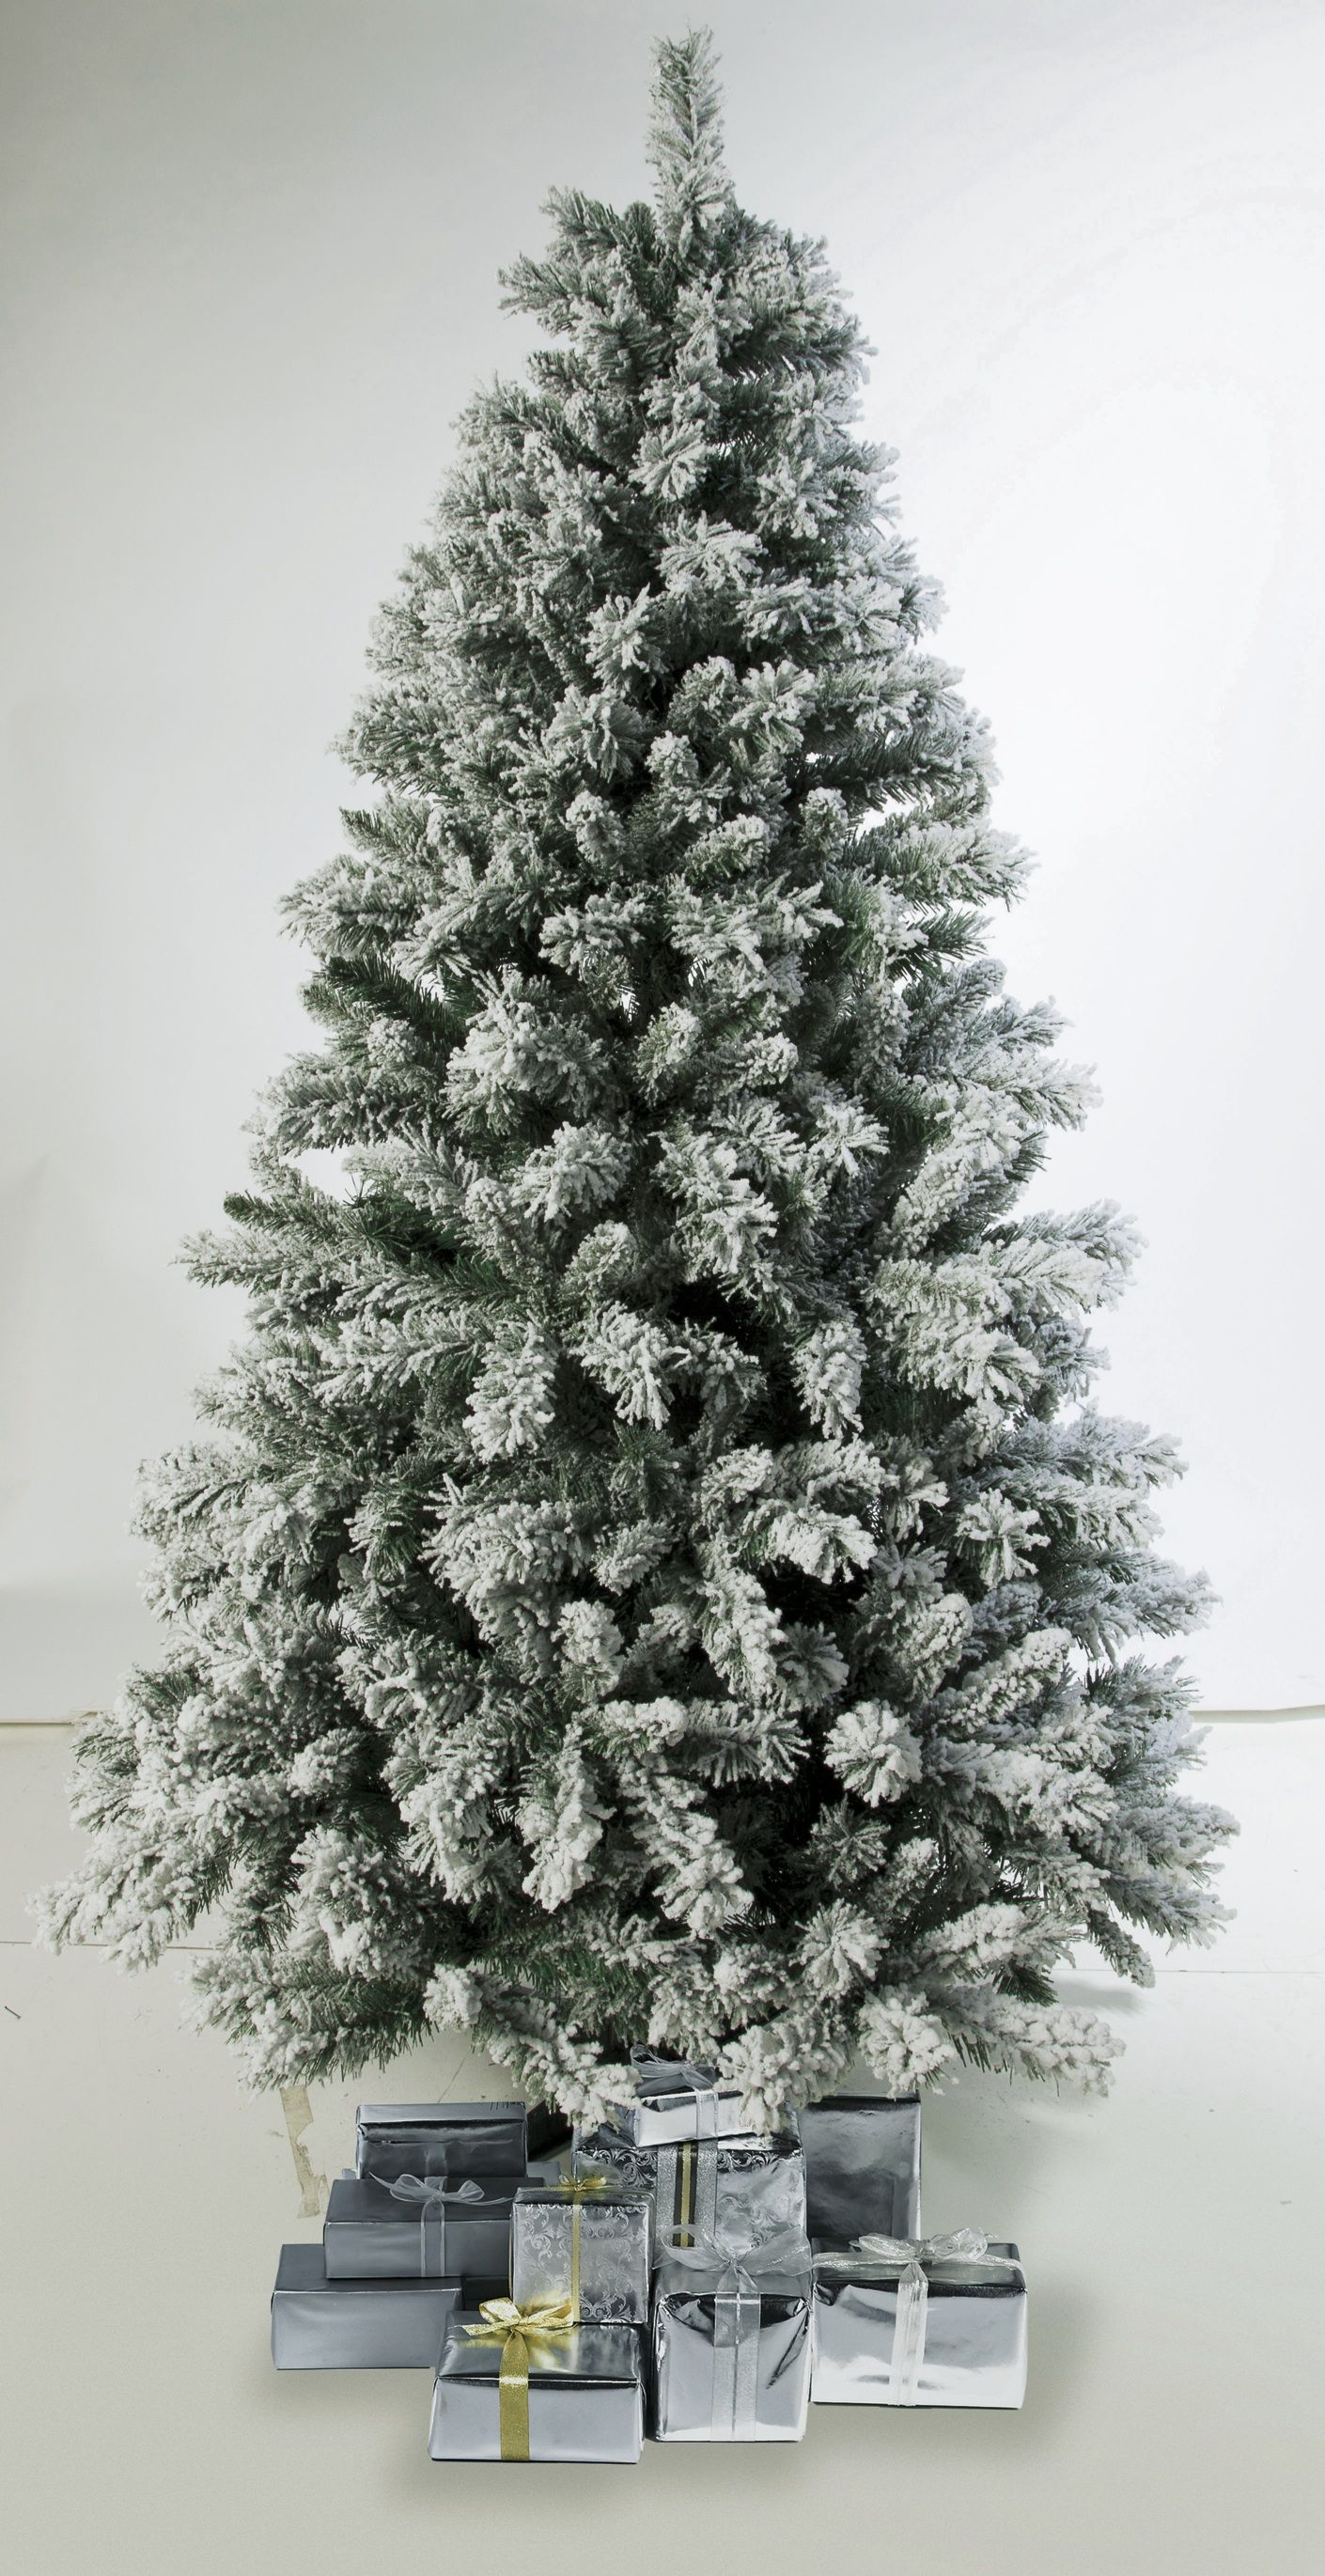 new product bf0a2 1d1a9 Home 6ft Pre-Lit Snow Tipped Christmas Tree - Green ...